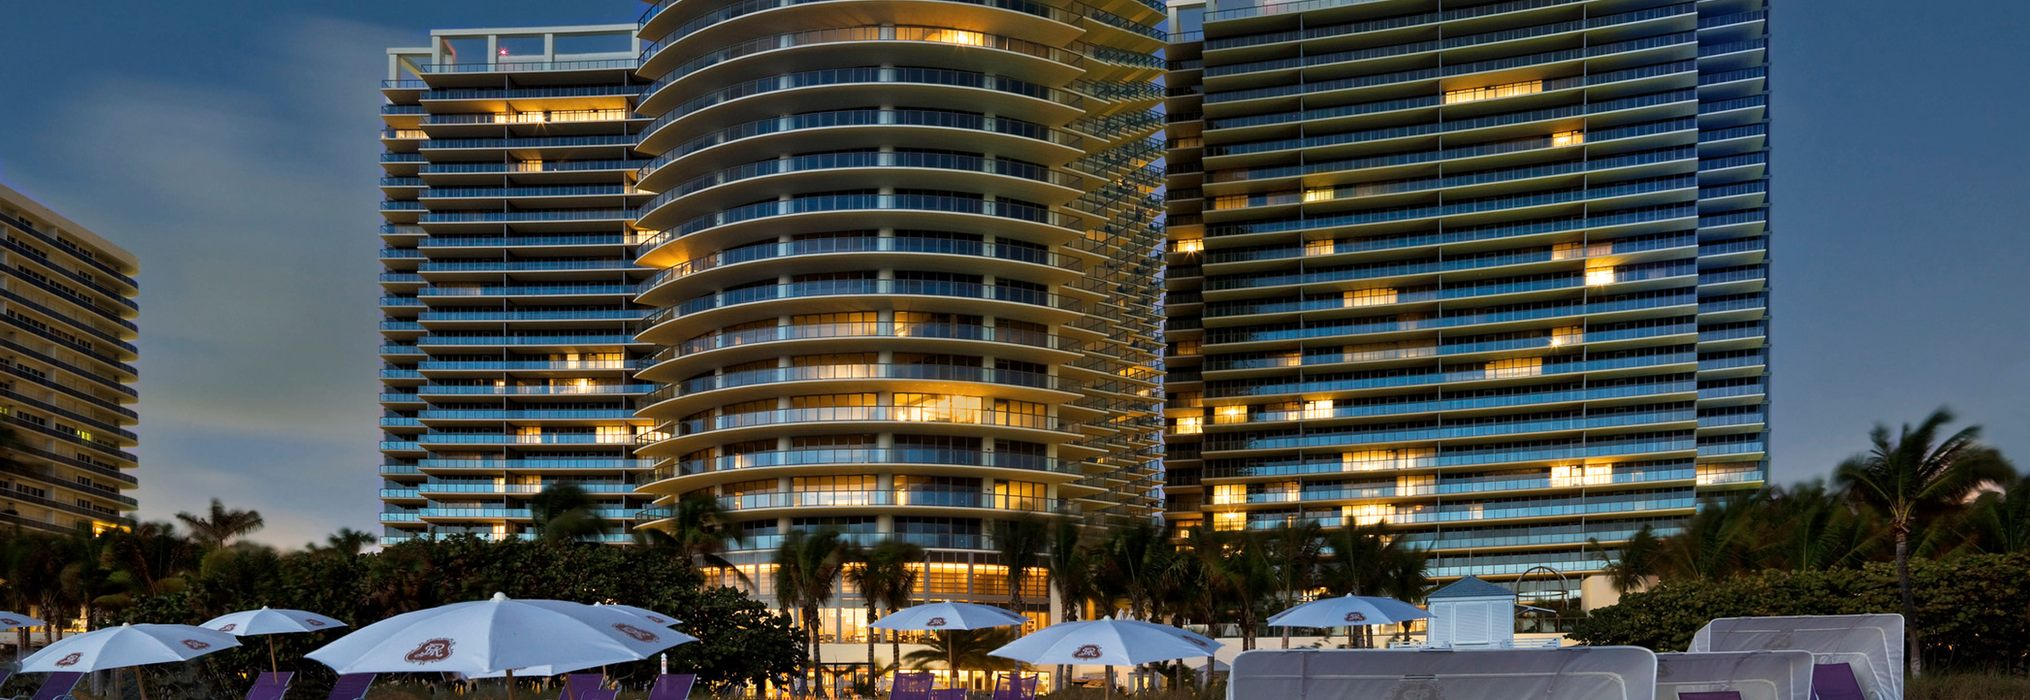 The St. Regis Bal Harbour - Work & Travel Year USA